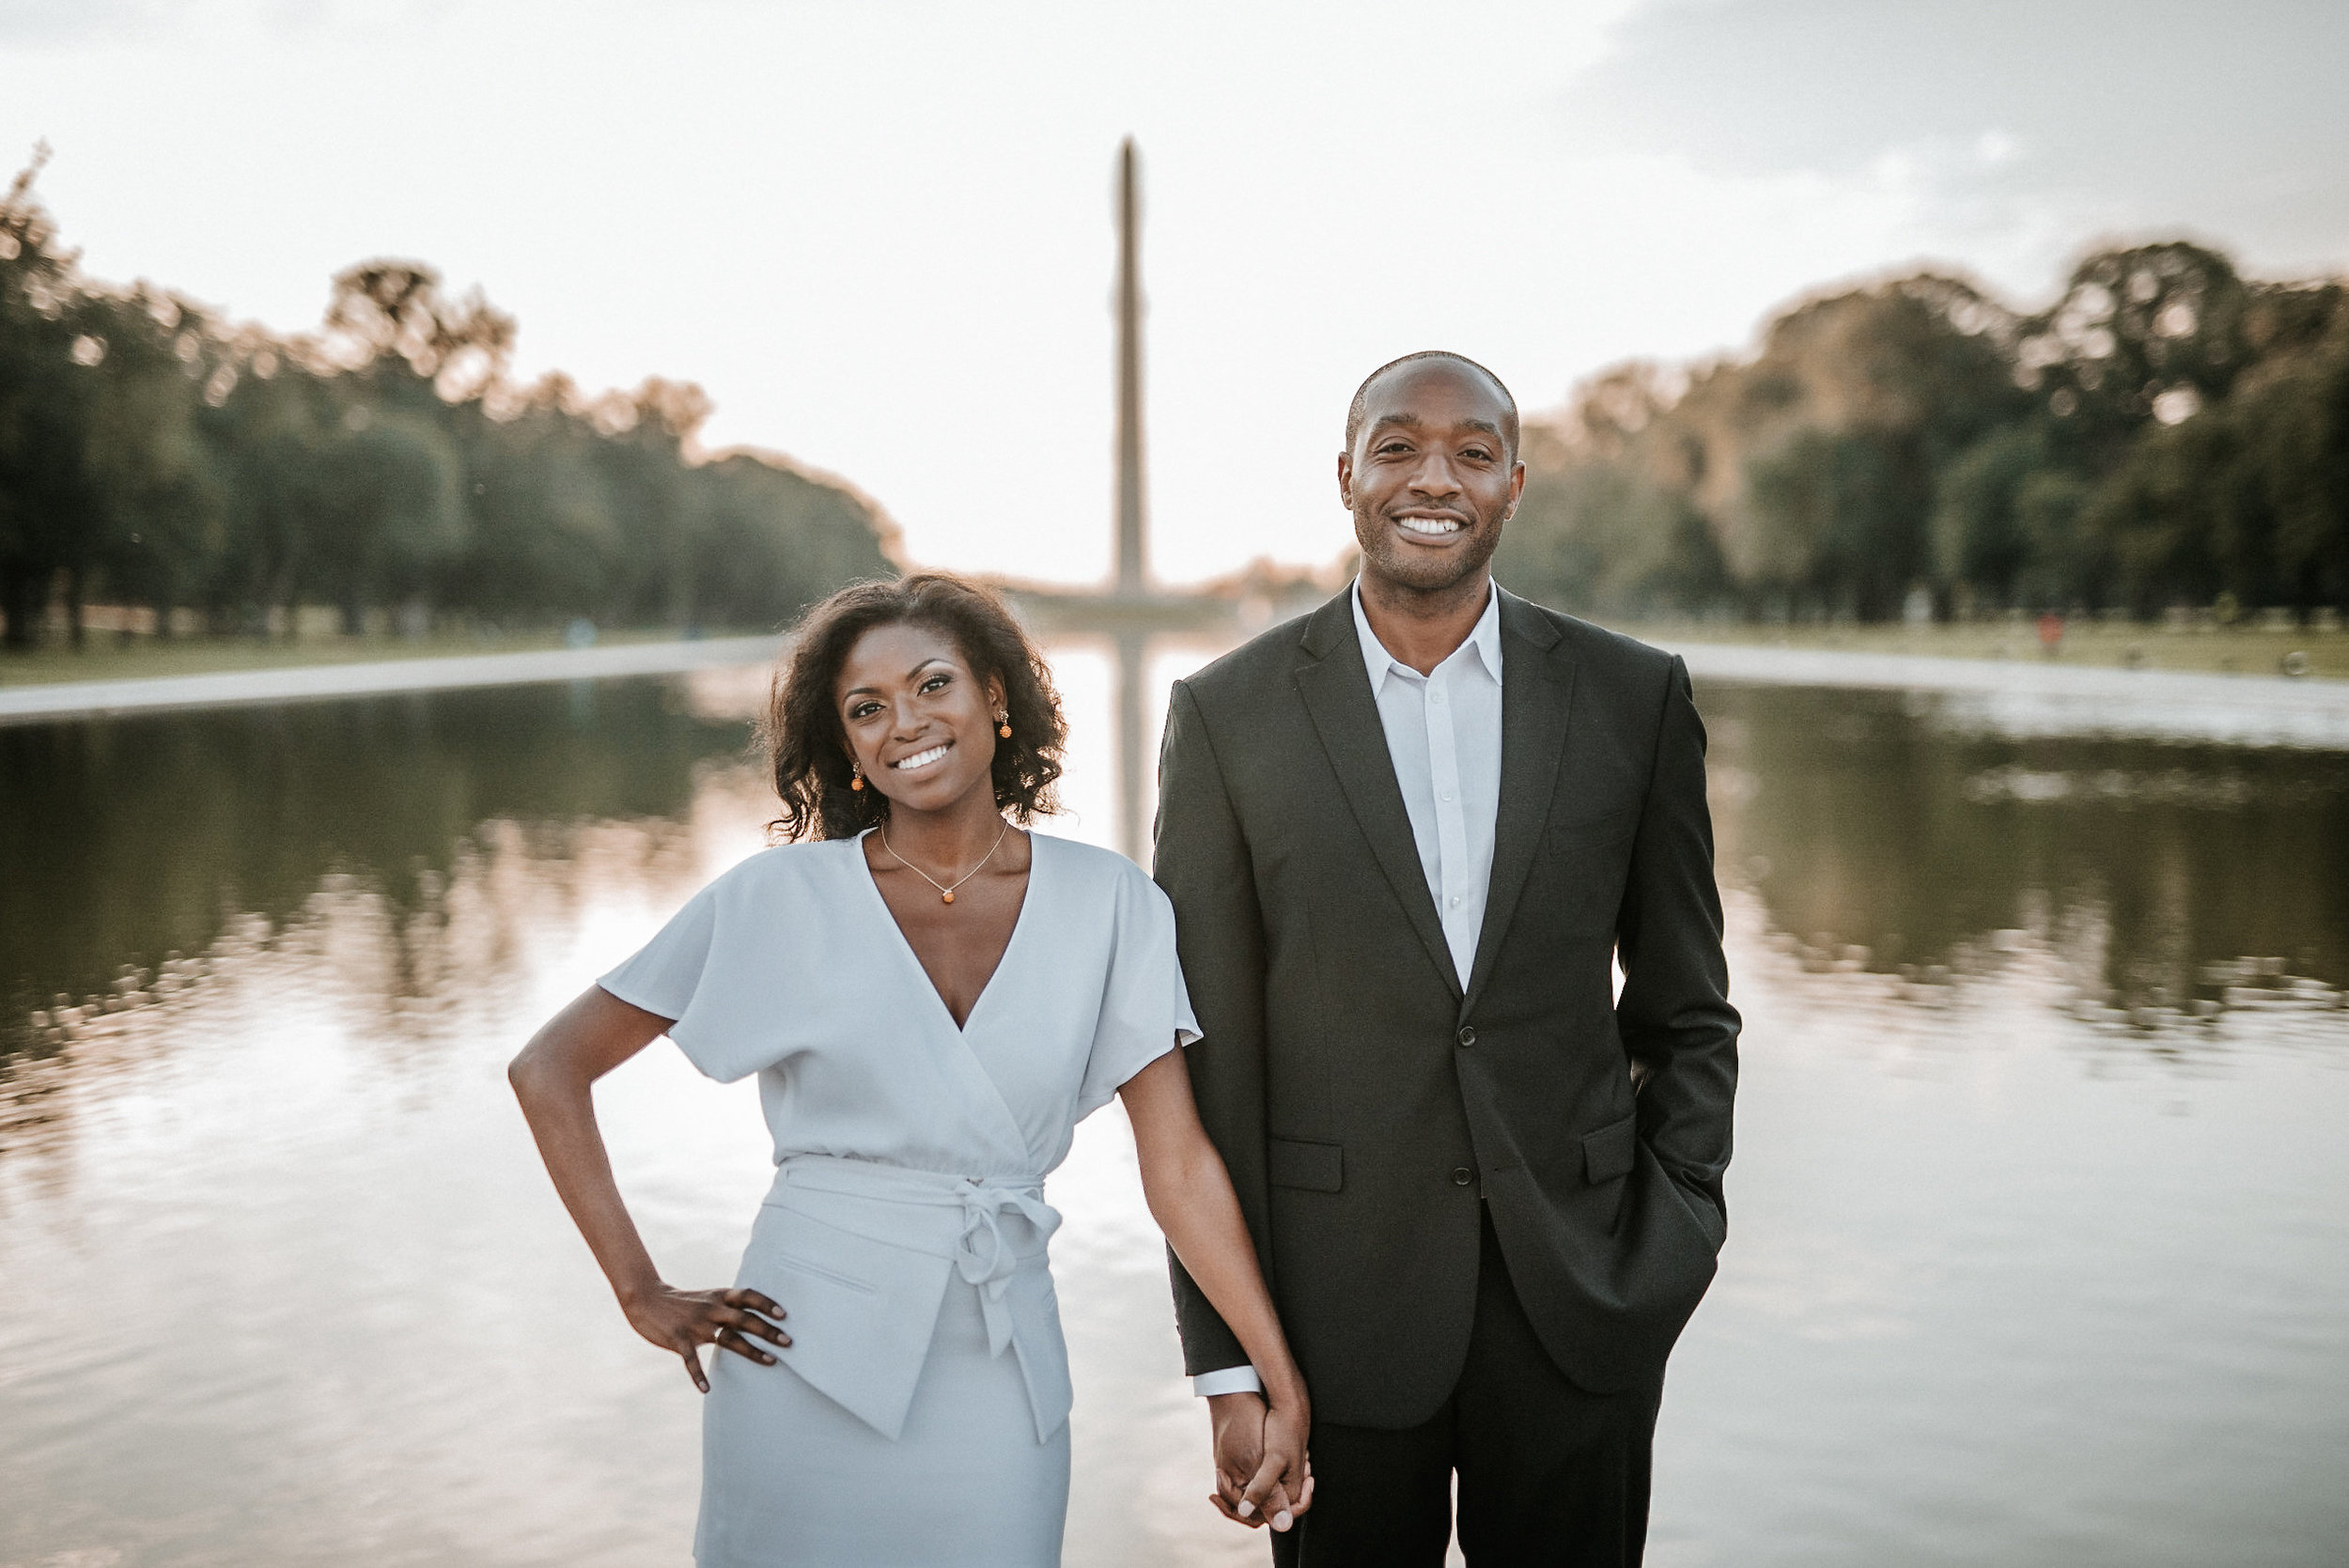 Couple standing by reflecting pool